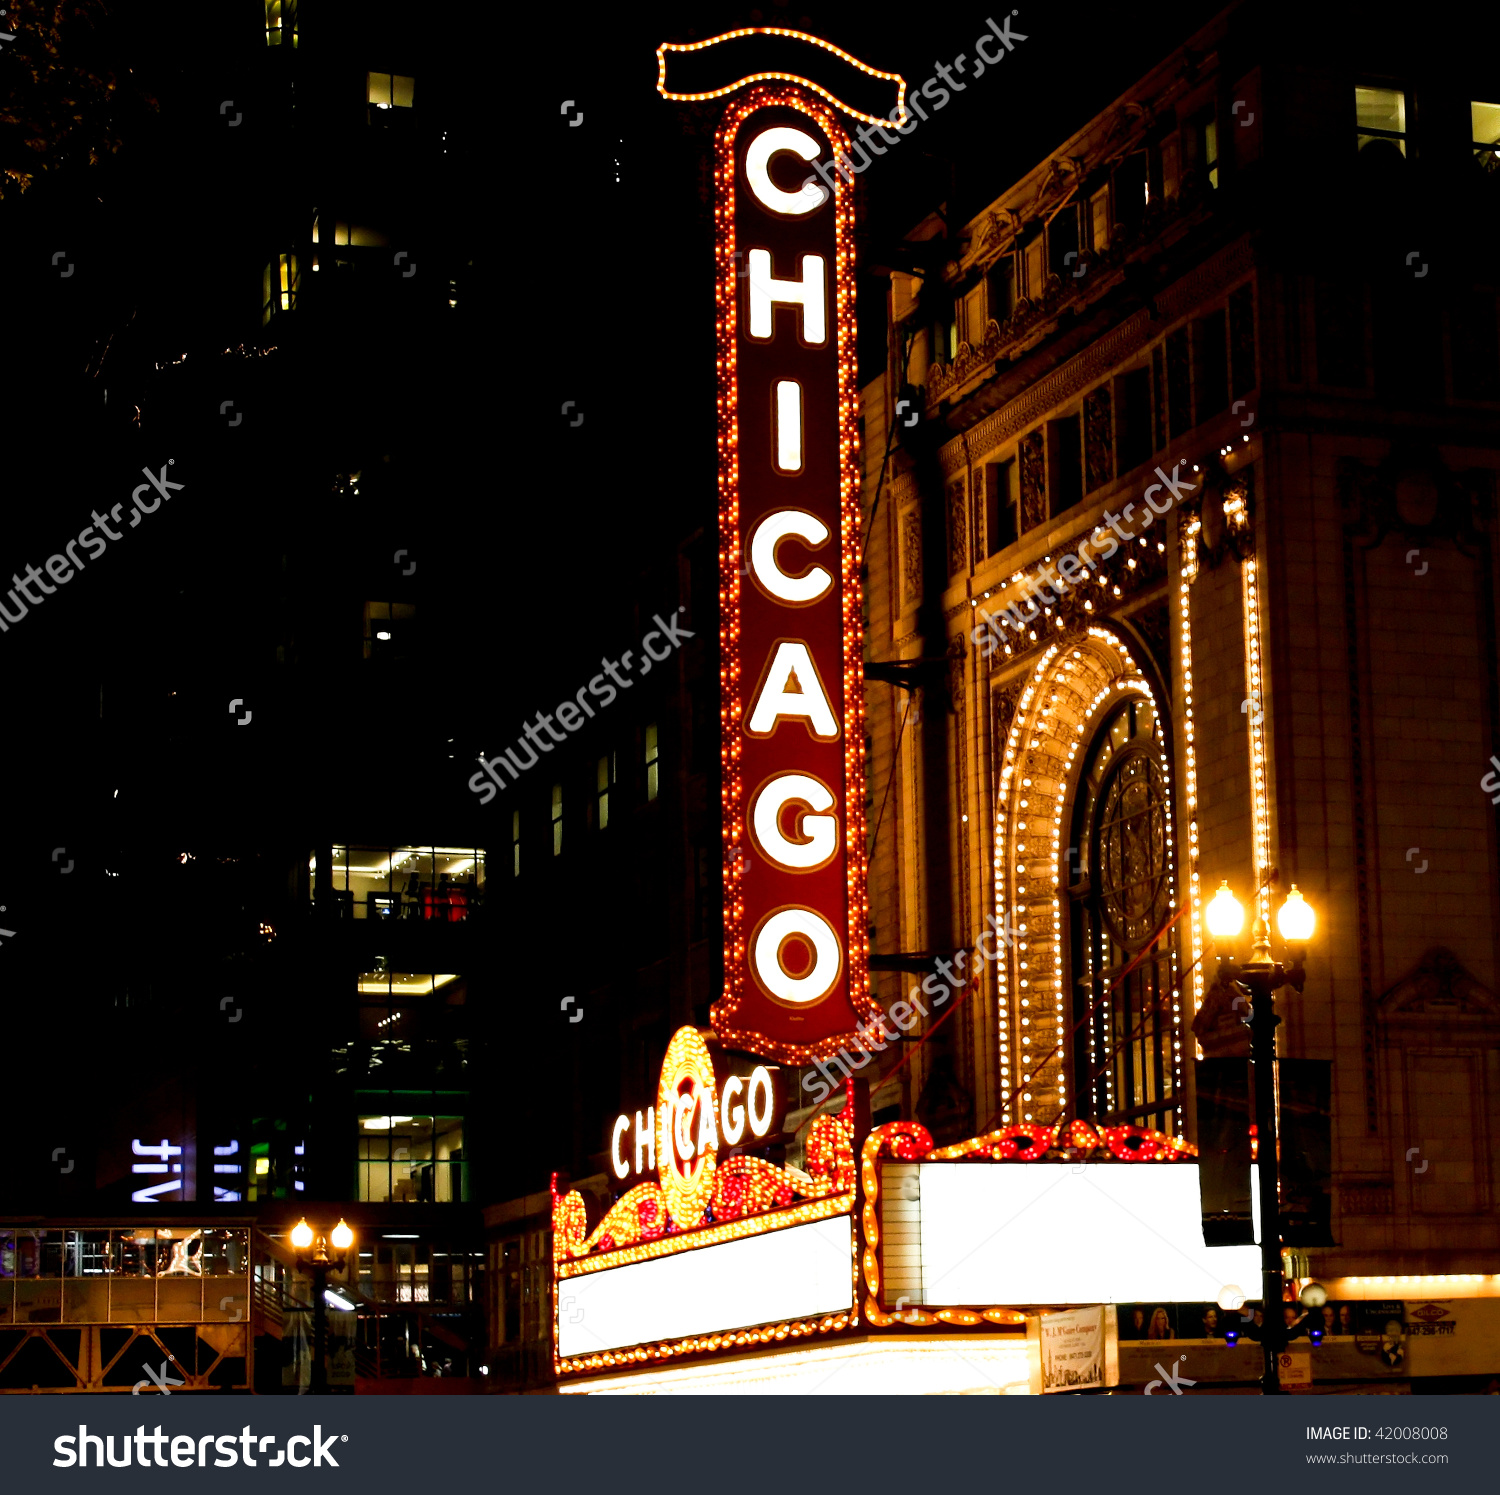 Famous Chicago Theater Sign Stock Photo 42008008.